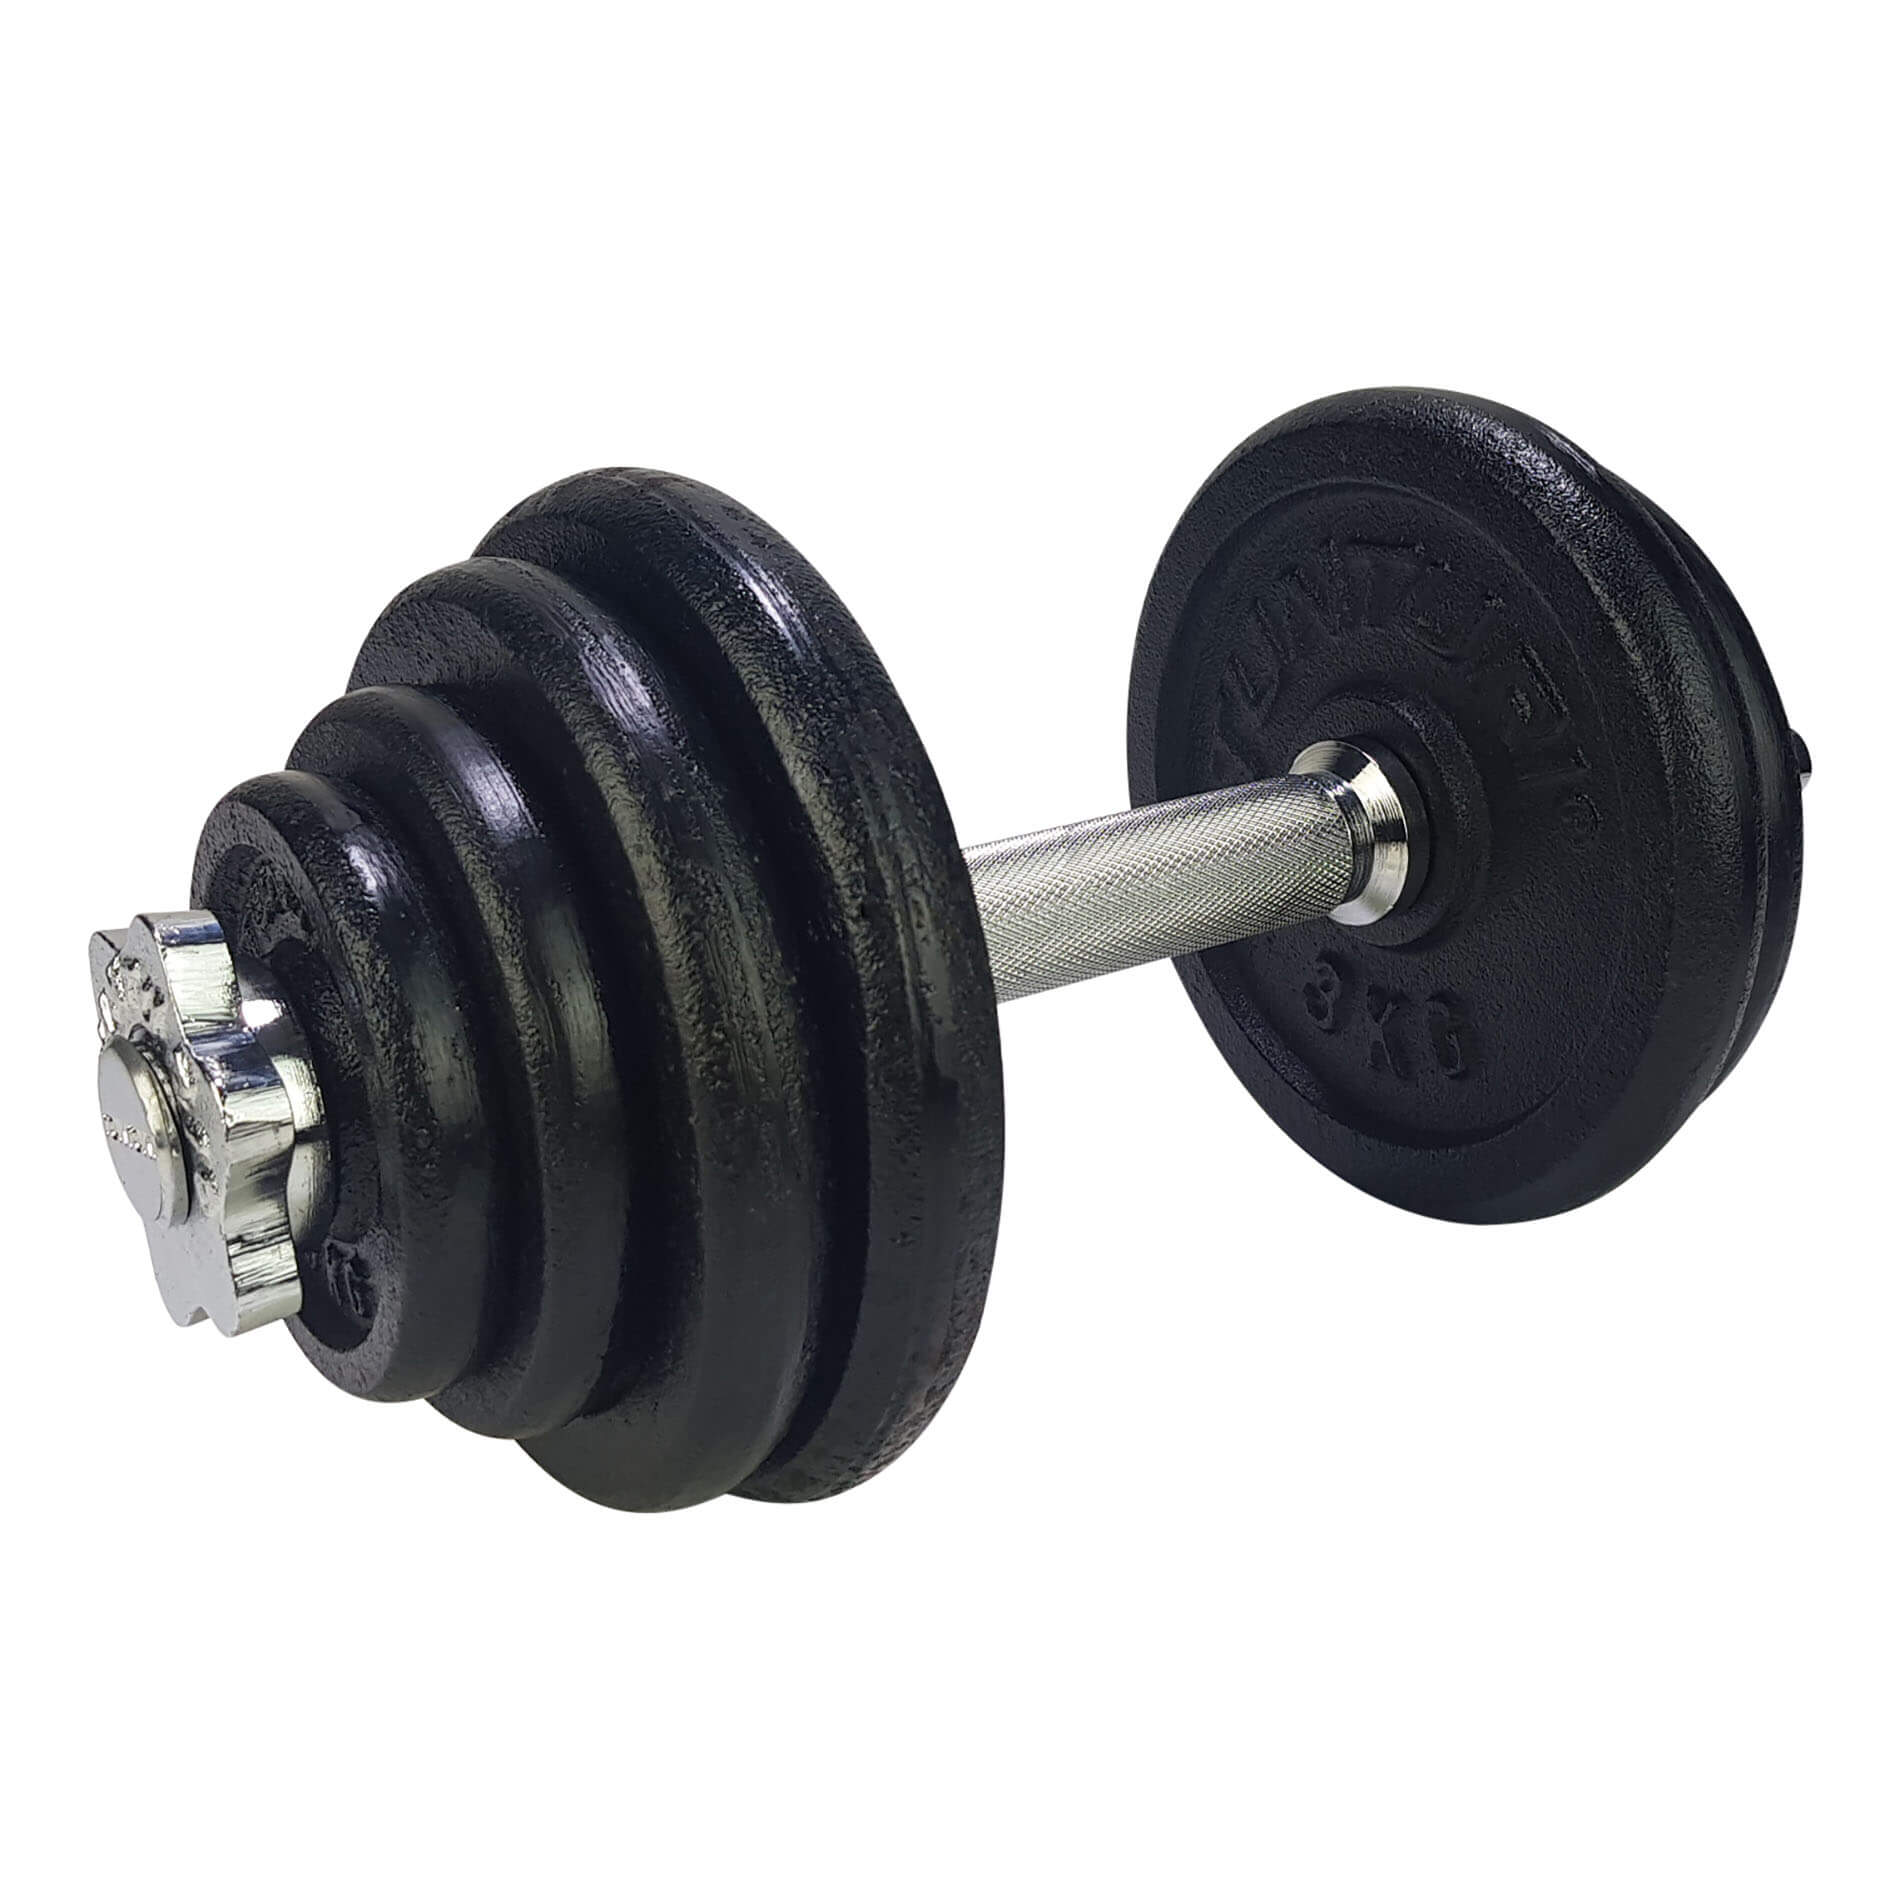 Dumbbellset, with 1 bar screw